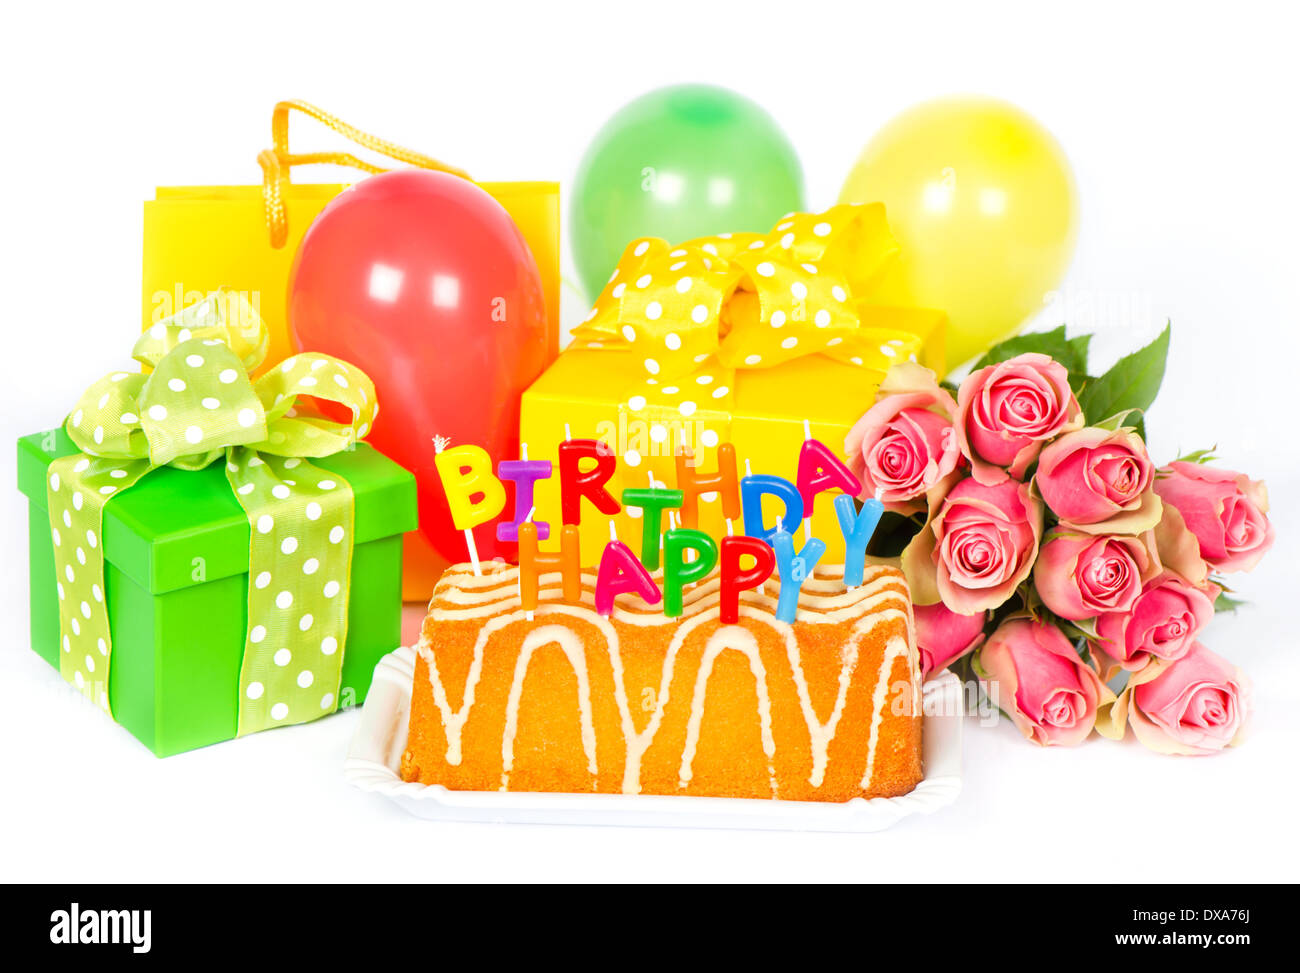 Birthday Party Decoration With Roses Flowers Cake Balloons Gifts And Candles